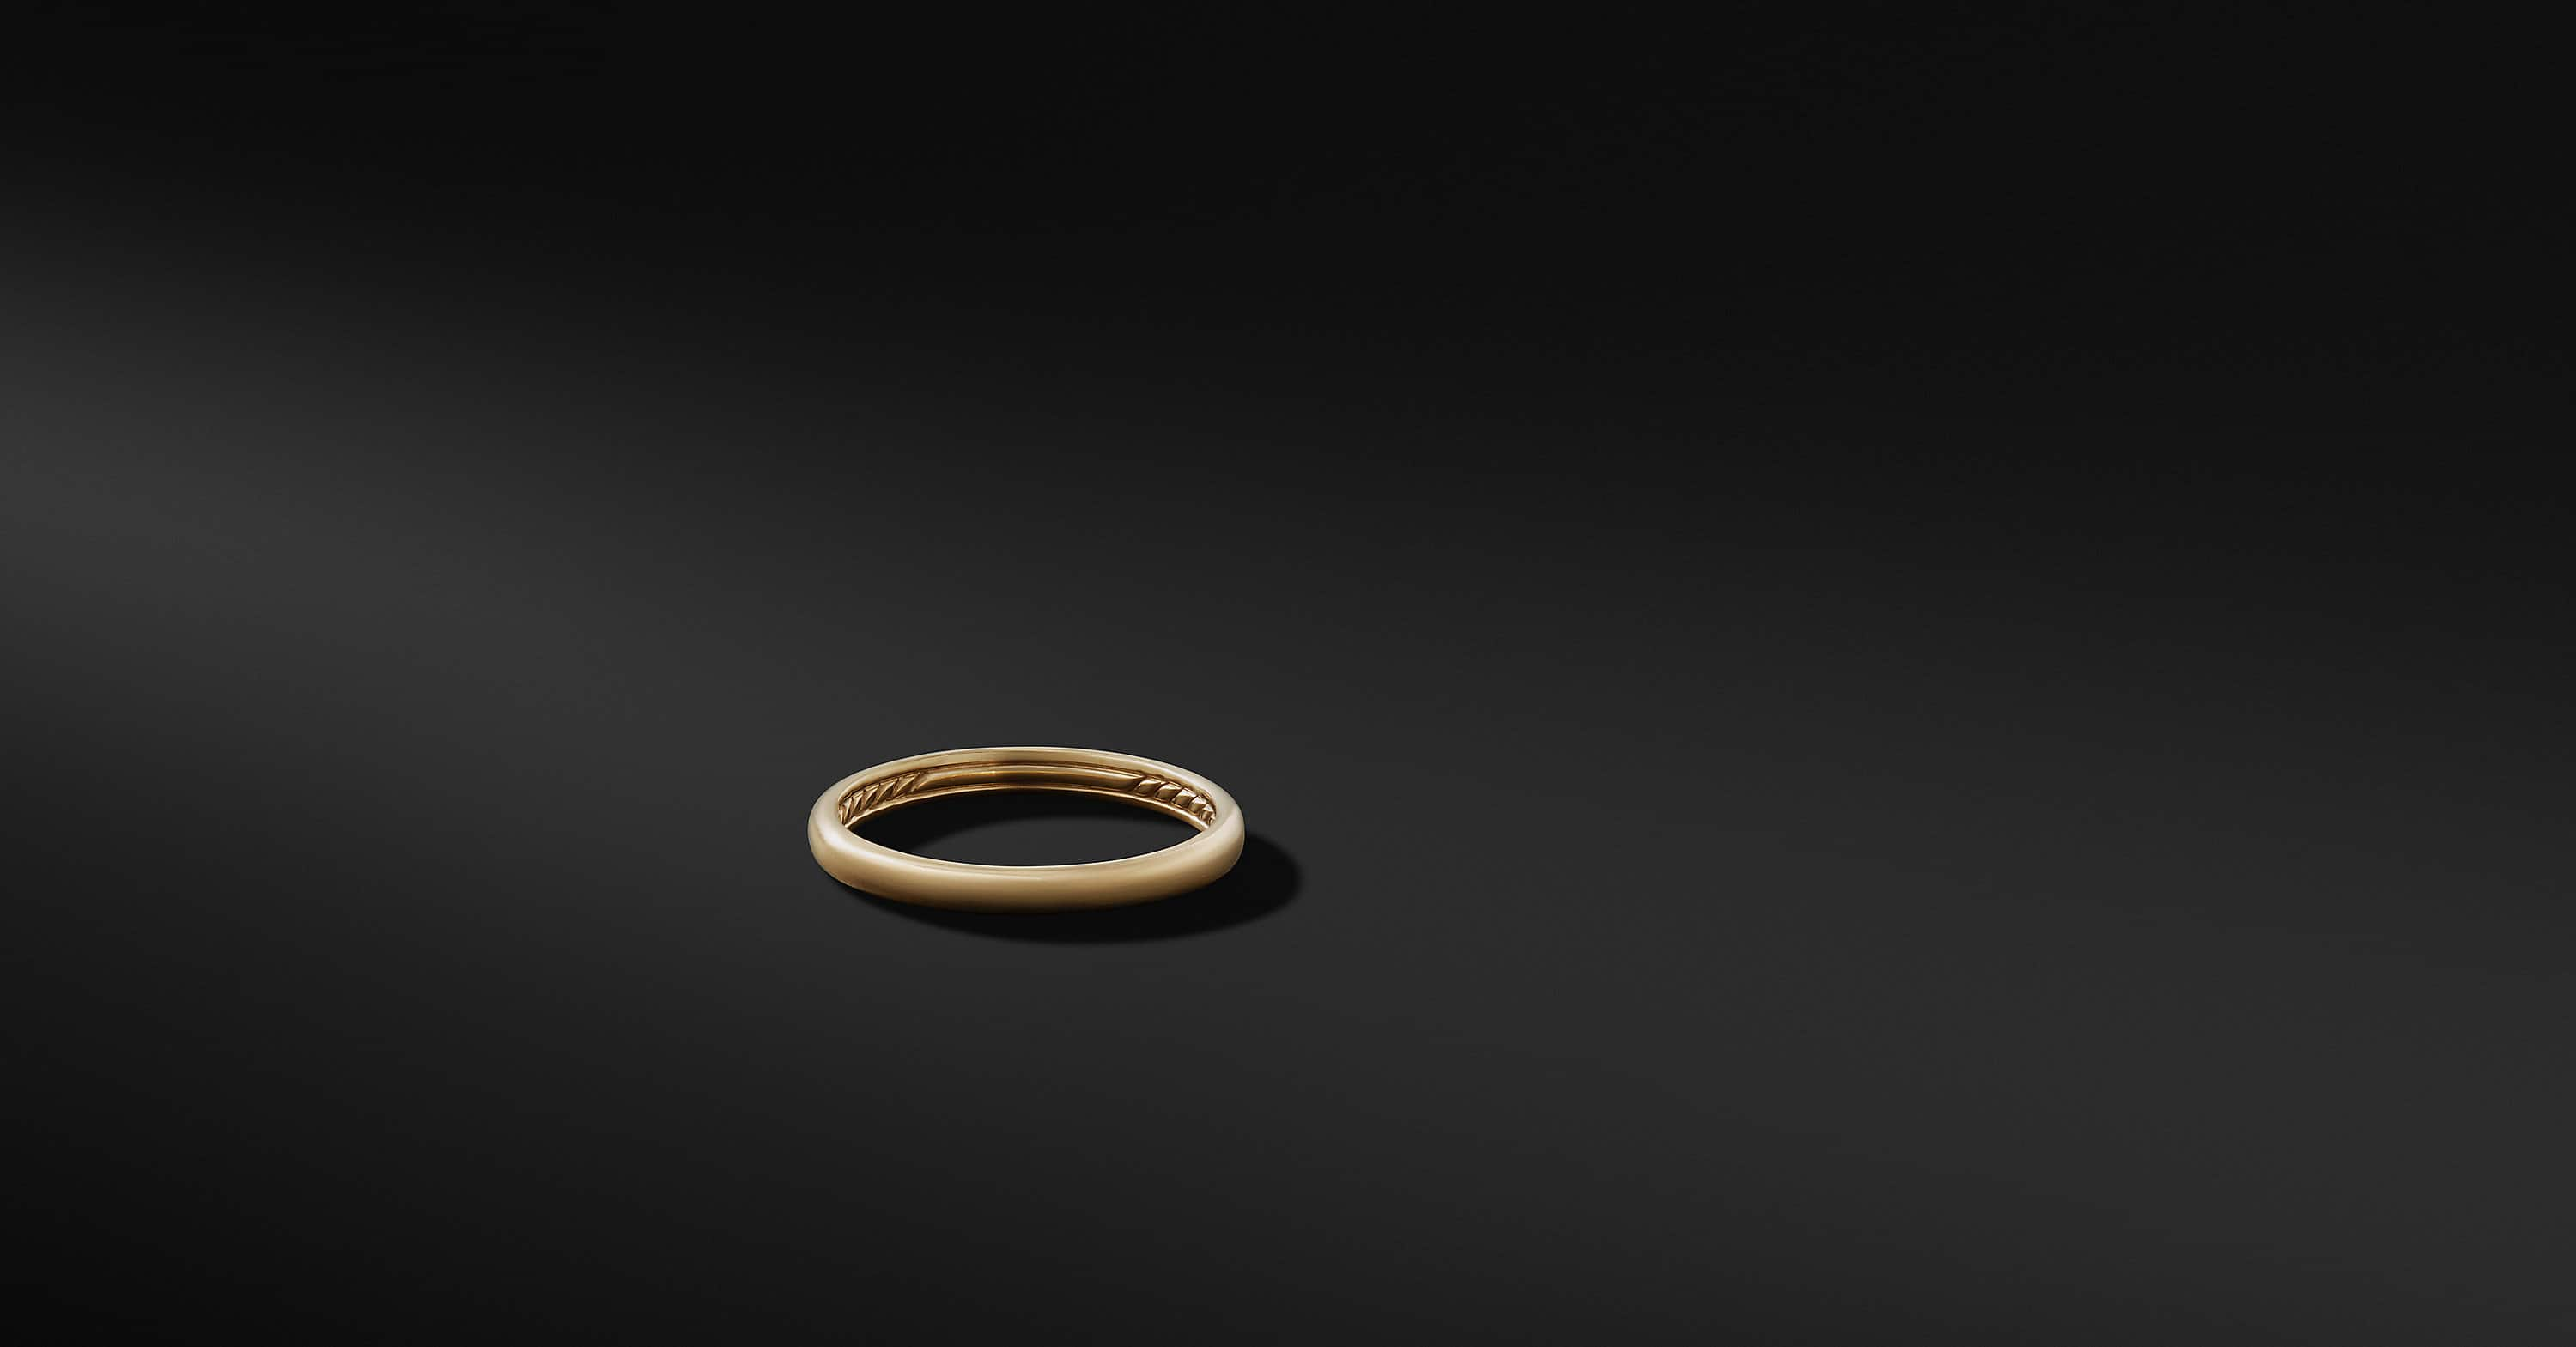 DY Classic Band in 18K Gold, 3mm